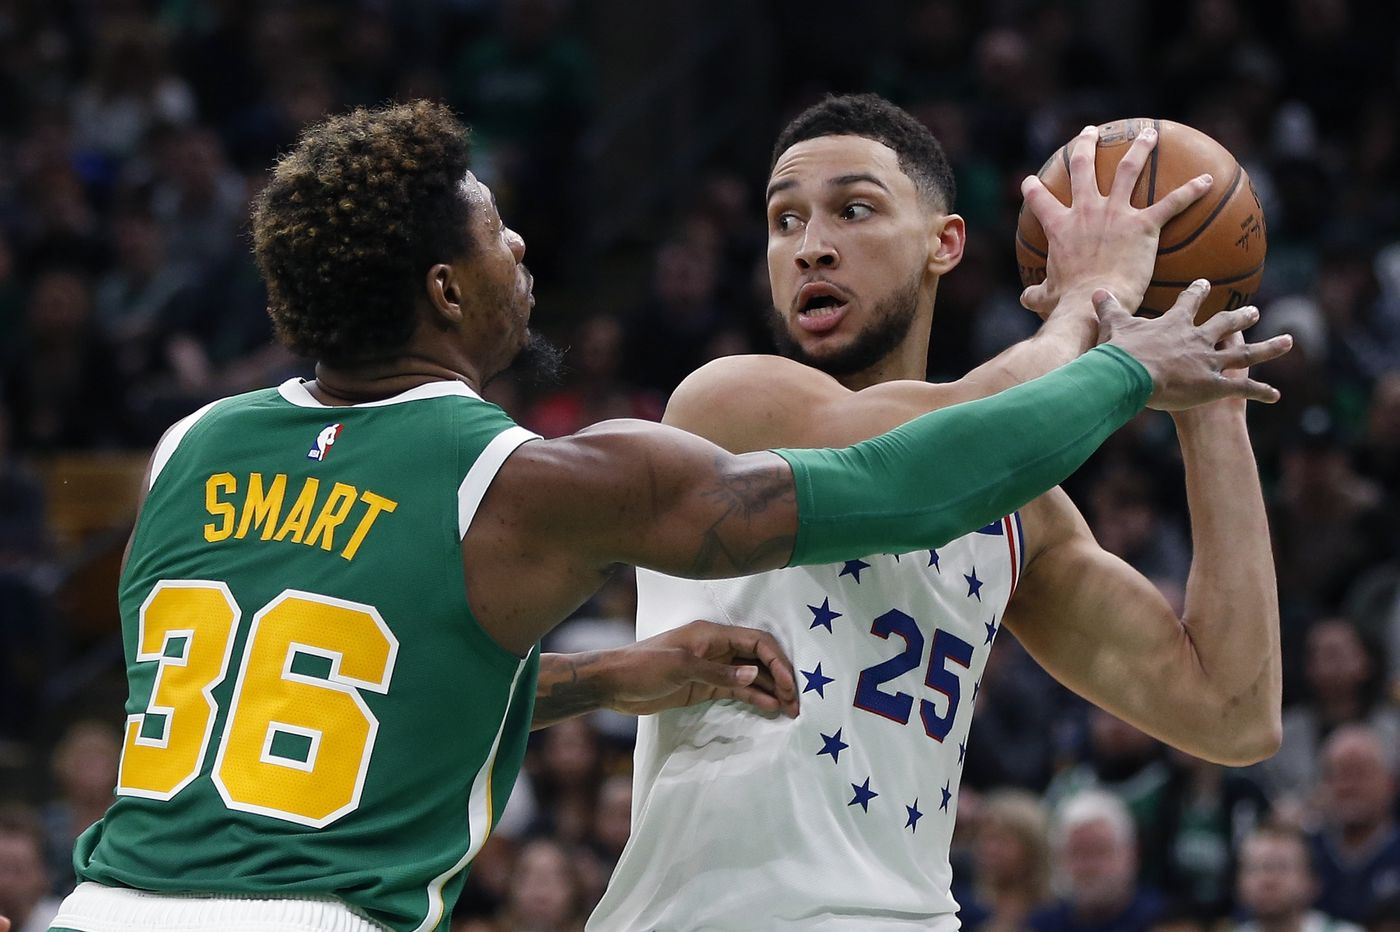 Sixers-Celtics observations: Kyrie Irving steals the show as Sixers bench struggles to help